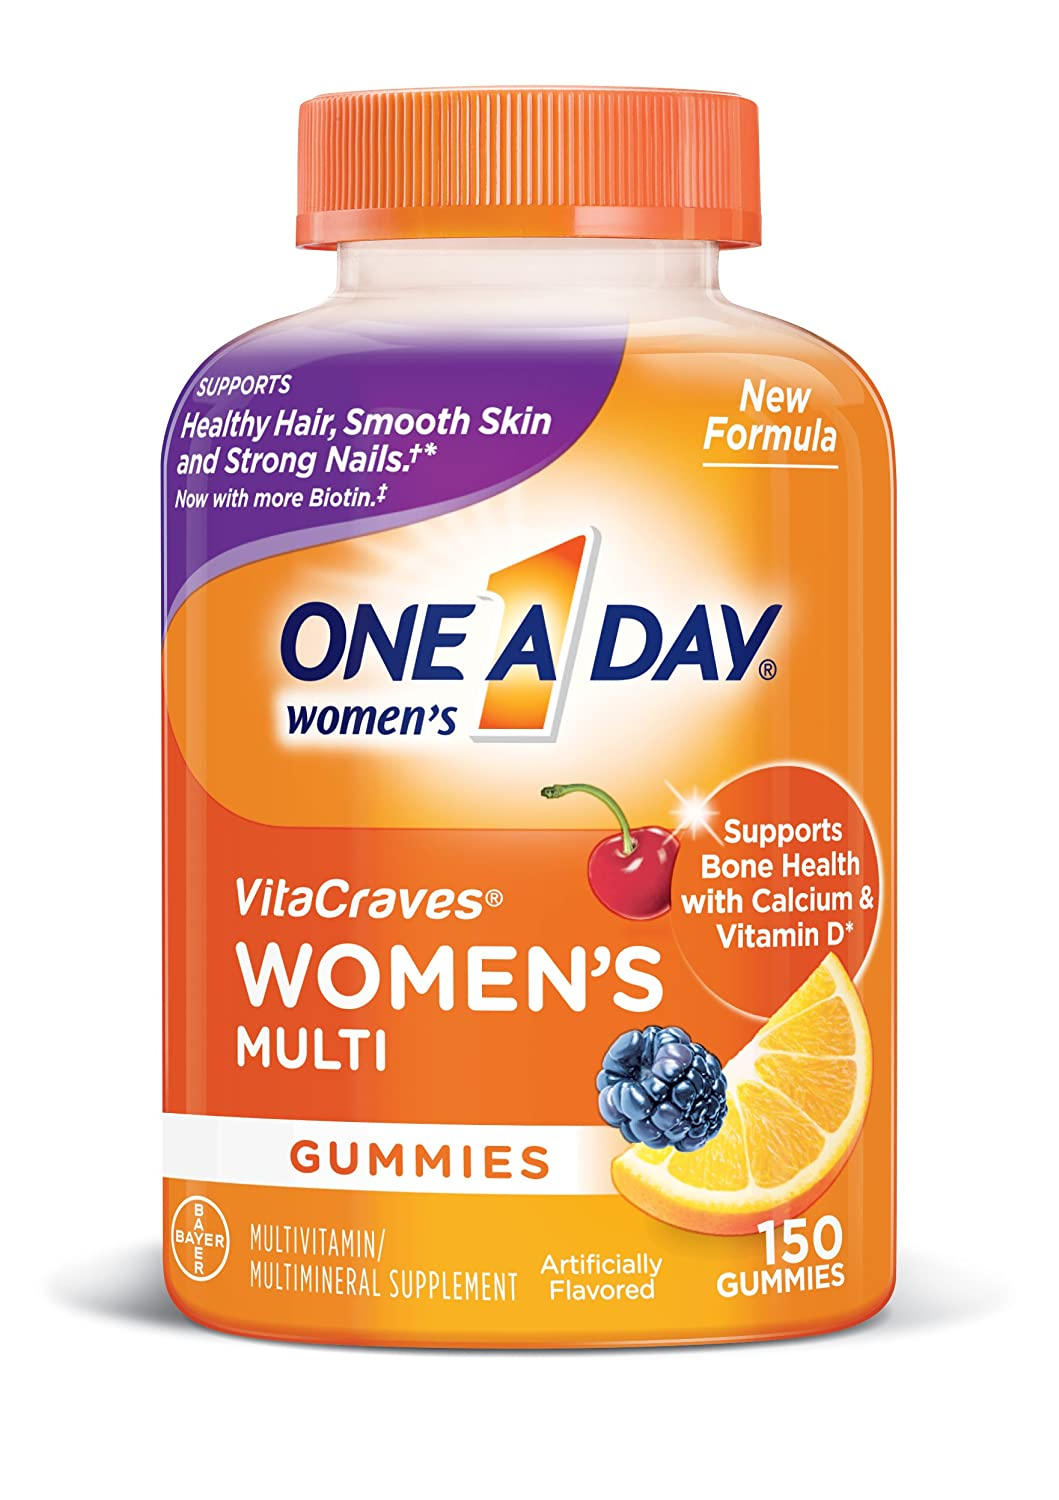 One A Day Women's VitaCraves Multivitamin Gums